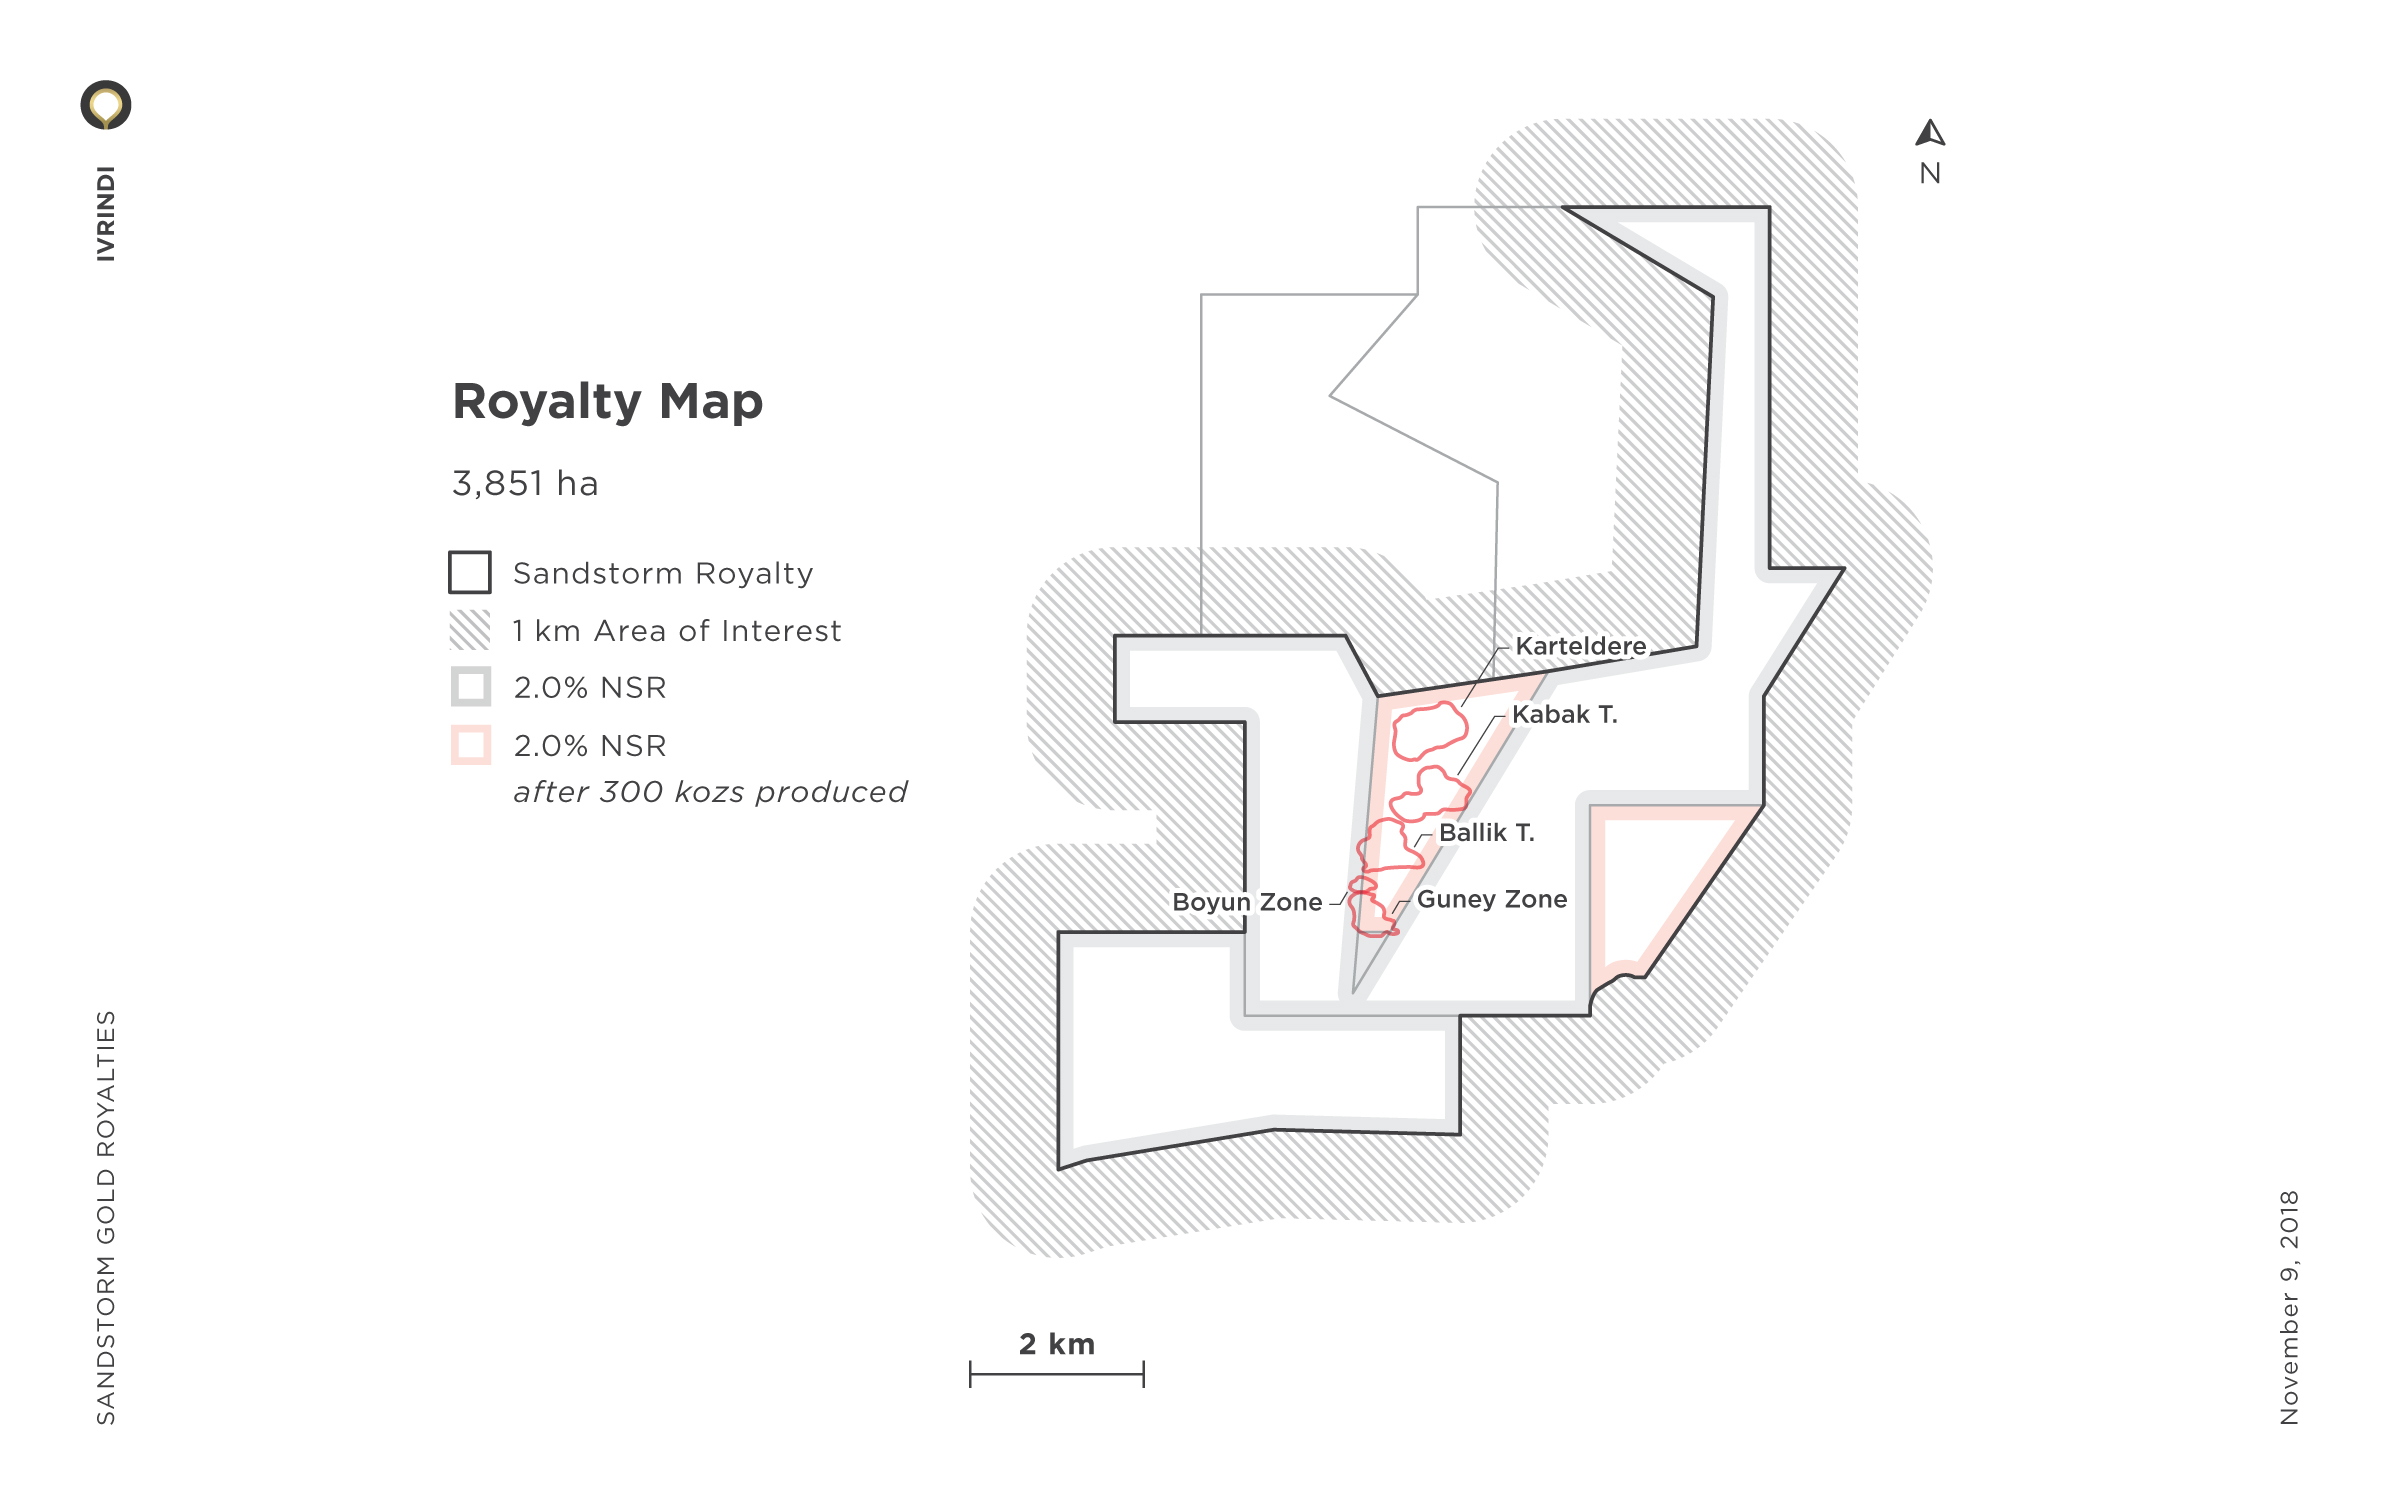 Ivrindi Royalty Map